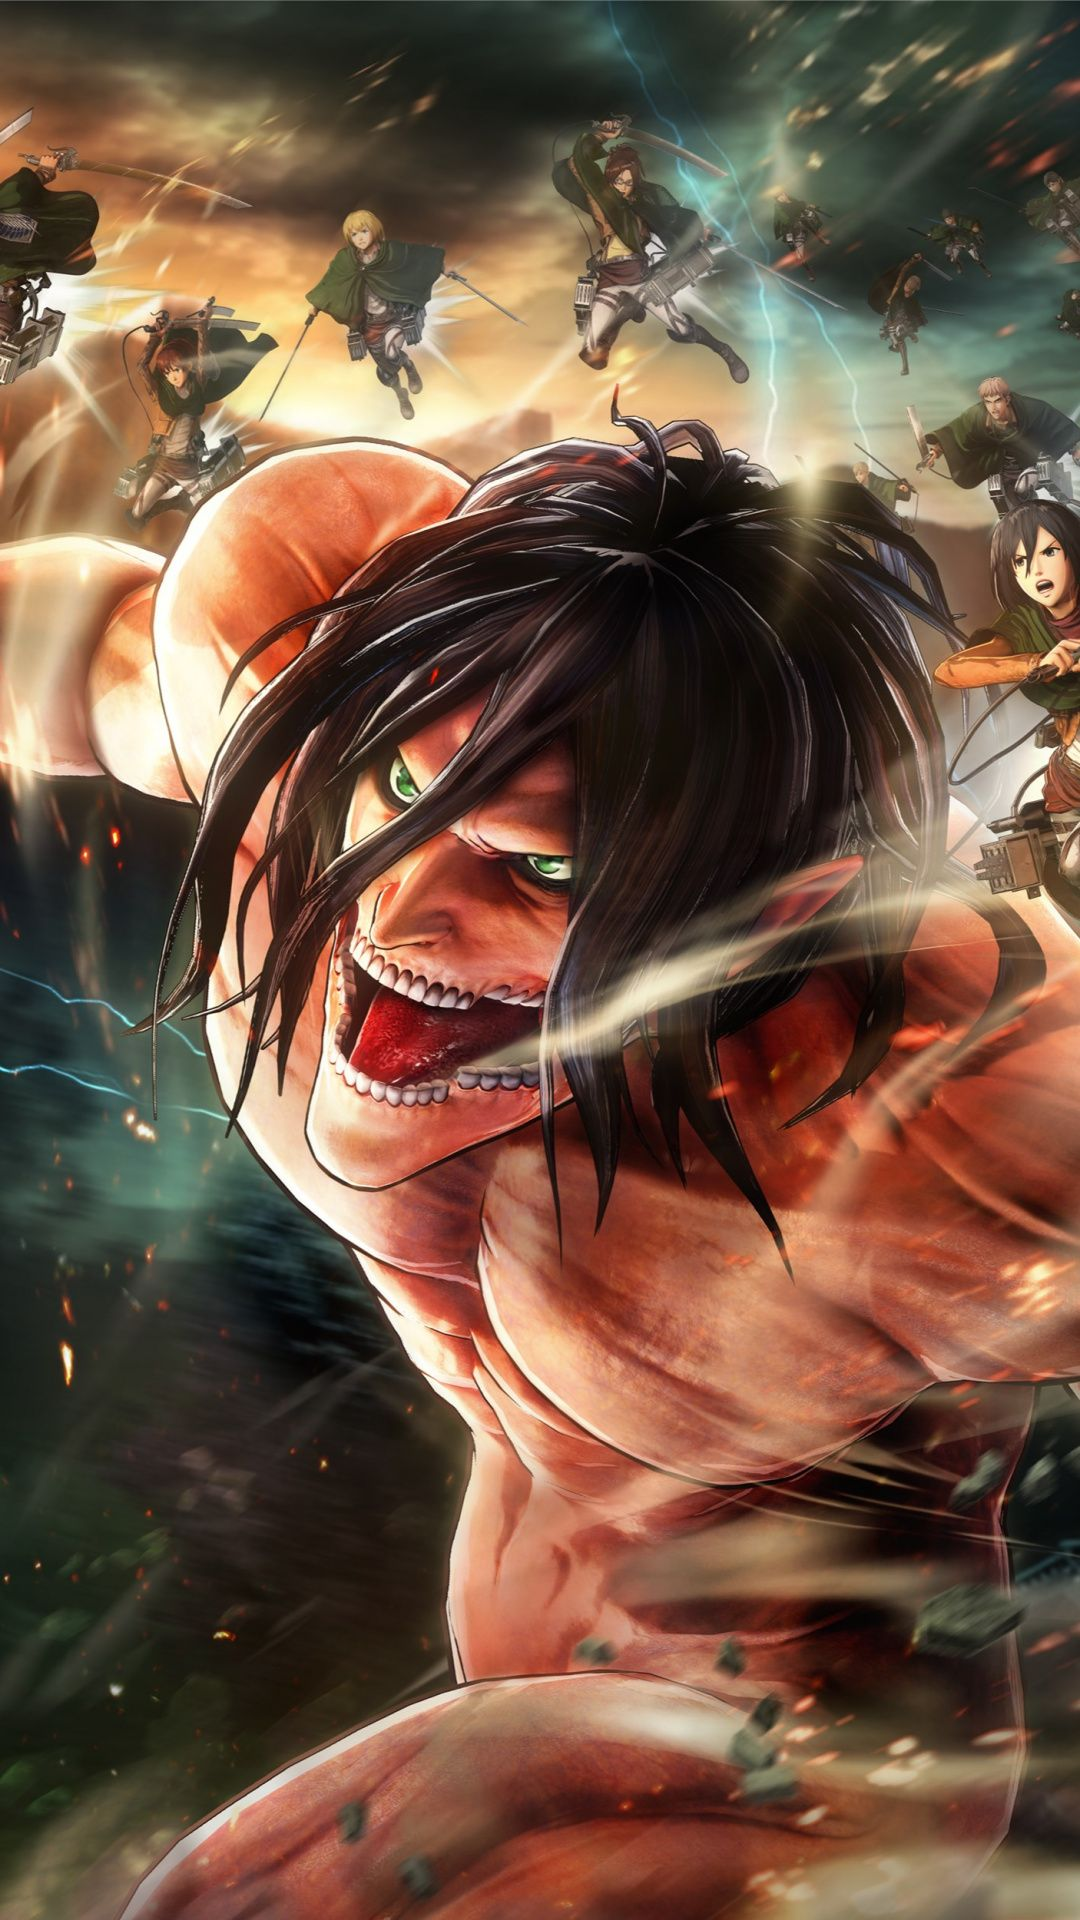 Wallpapers Anime Mythology Art Attack On Titan Creative Arts Attack On Titan Art Attack On Titan Anime Attack On Titan Fanart